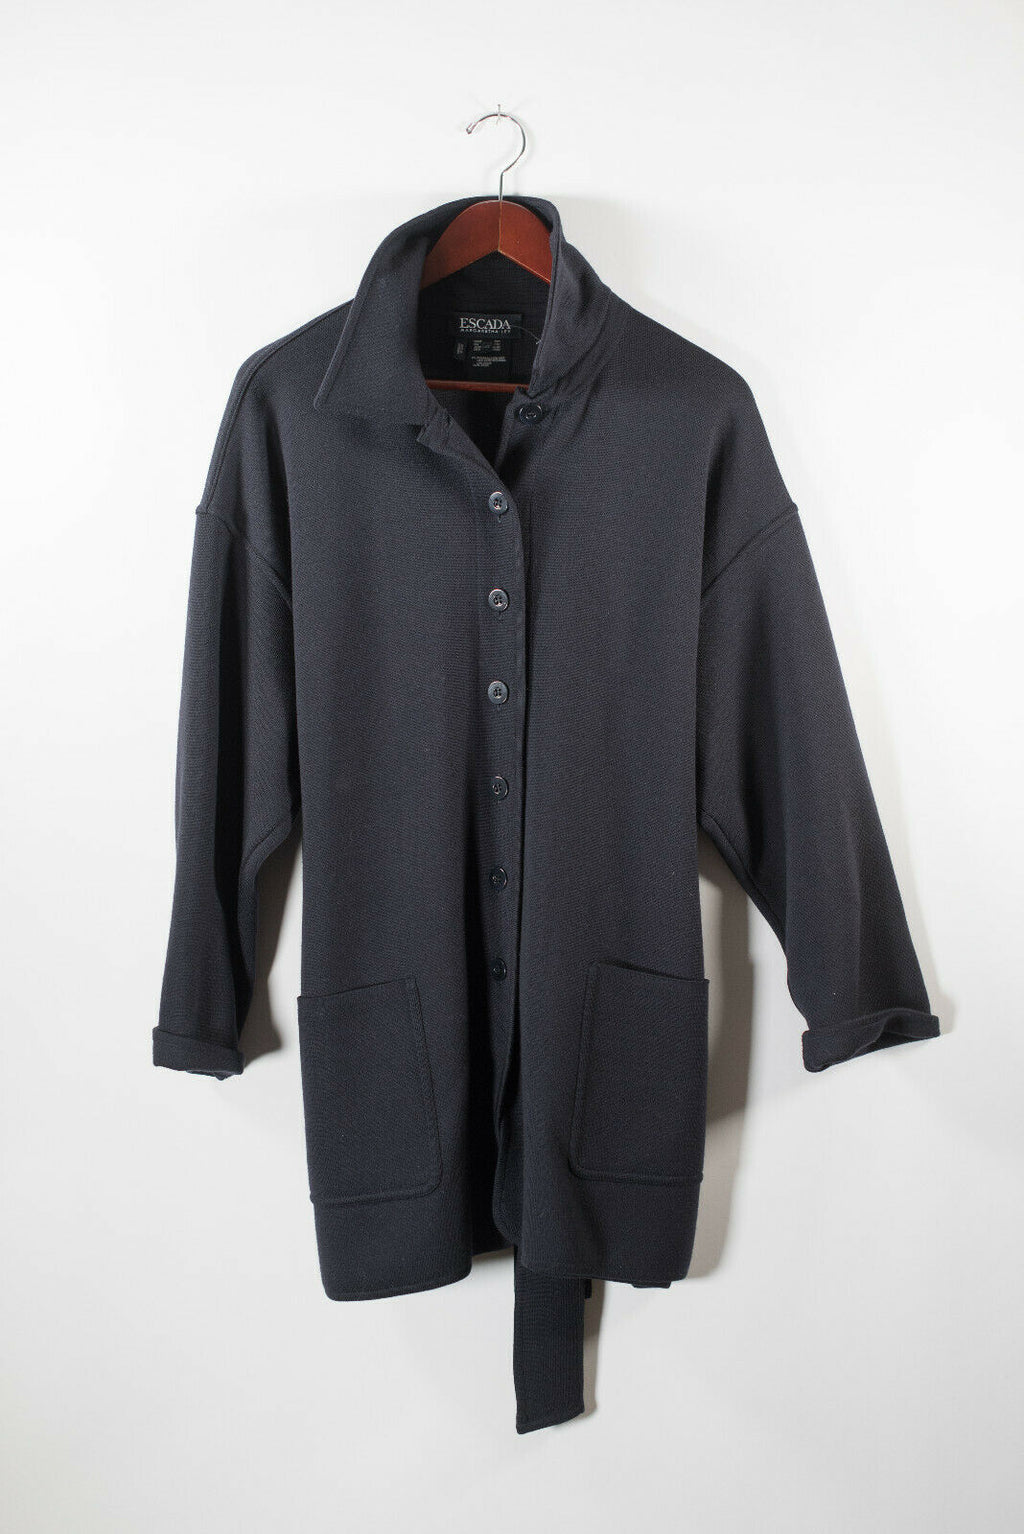 Escada Womens 42 Medium Blue Jacket Wool Designer Knit Belted Button VTG Coat